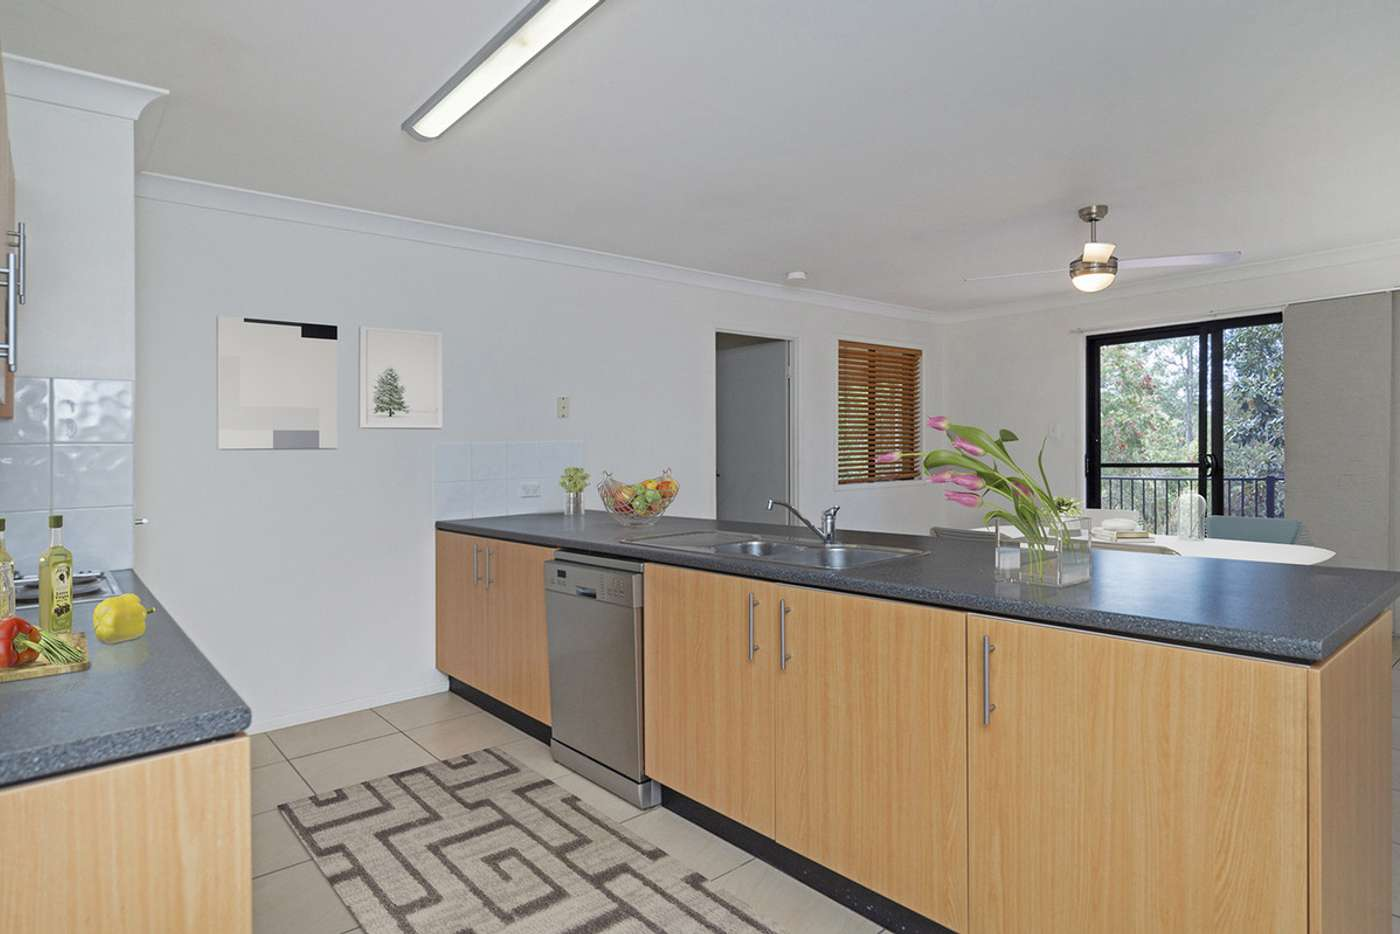 Fifth view of Homely house listing, 19 Lucas Crescent, Ormeau Hills QLD 4208